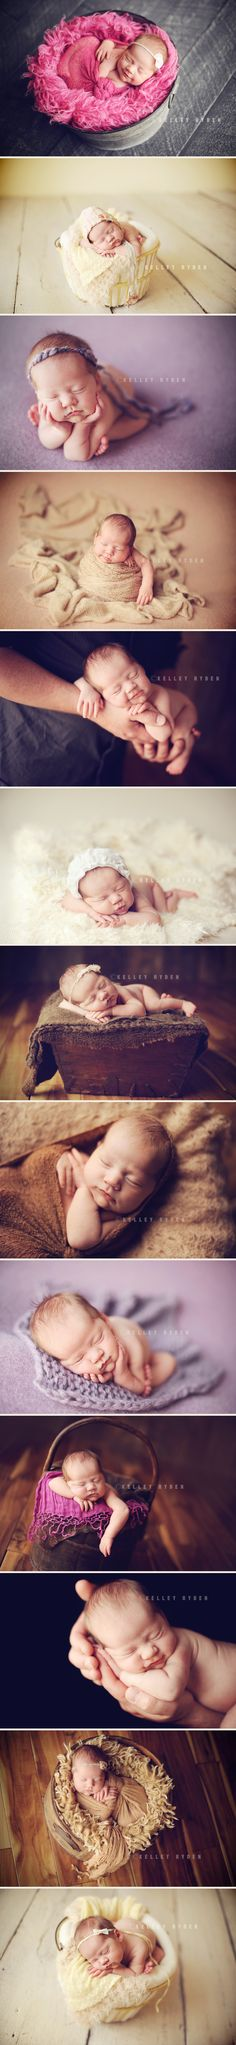 Clean styling - great, emotive newborn images from Kelley Ryden - Newborn Photographer